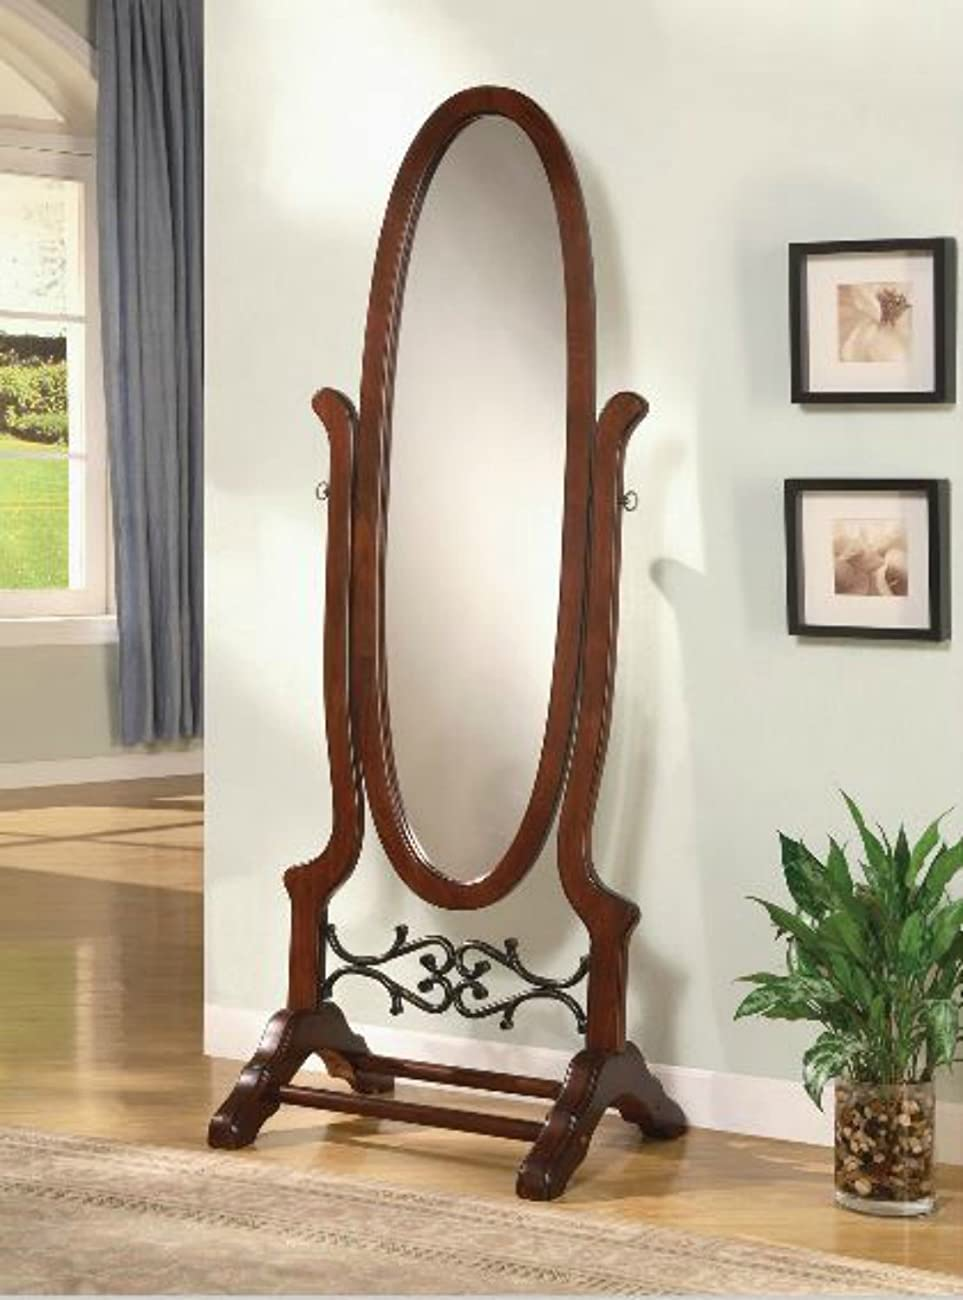 Wildon Home Cherry Full Length Standing Seatac Cheval Floor Mirror - This Oval Floor Mirror Is in Beautiful Contemporary Style and Is the Perfect Addition to Your Bedroom, Living Room, Family Room, Office or Any Other Room in You Home 4